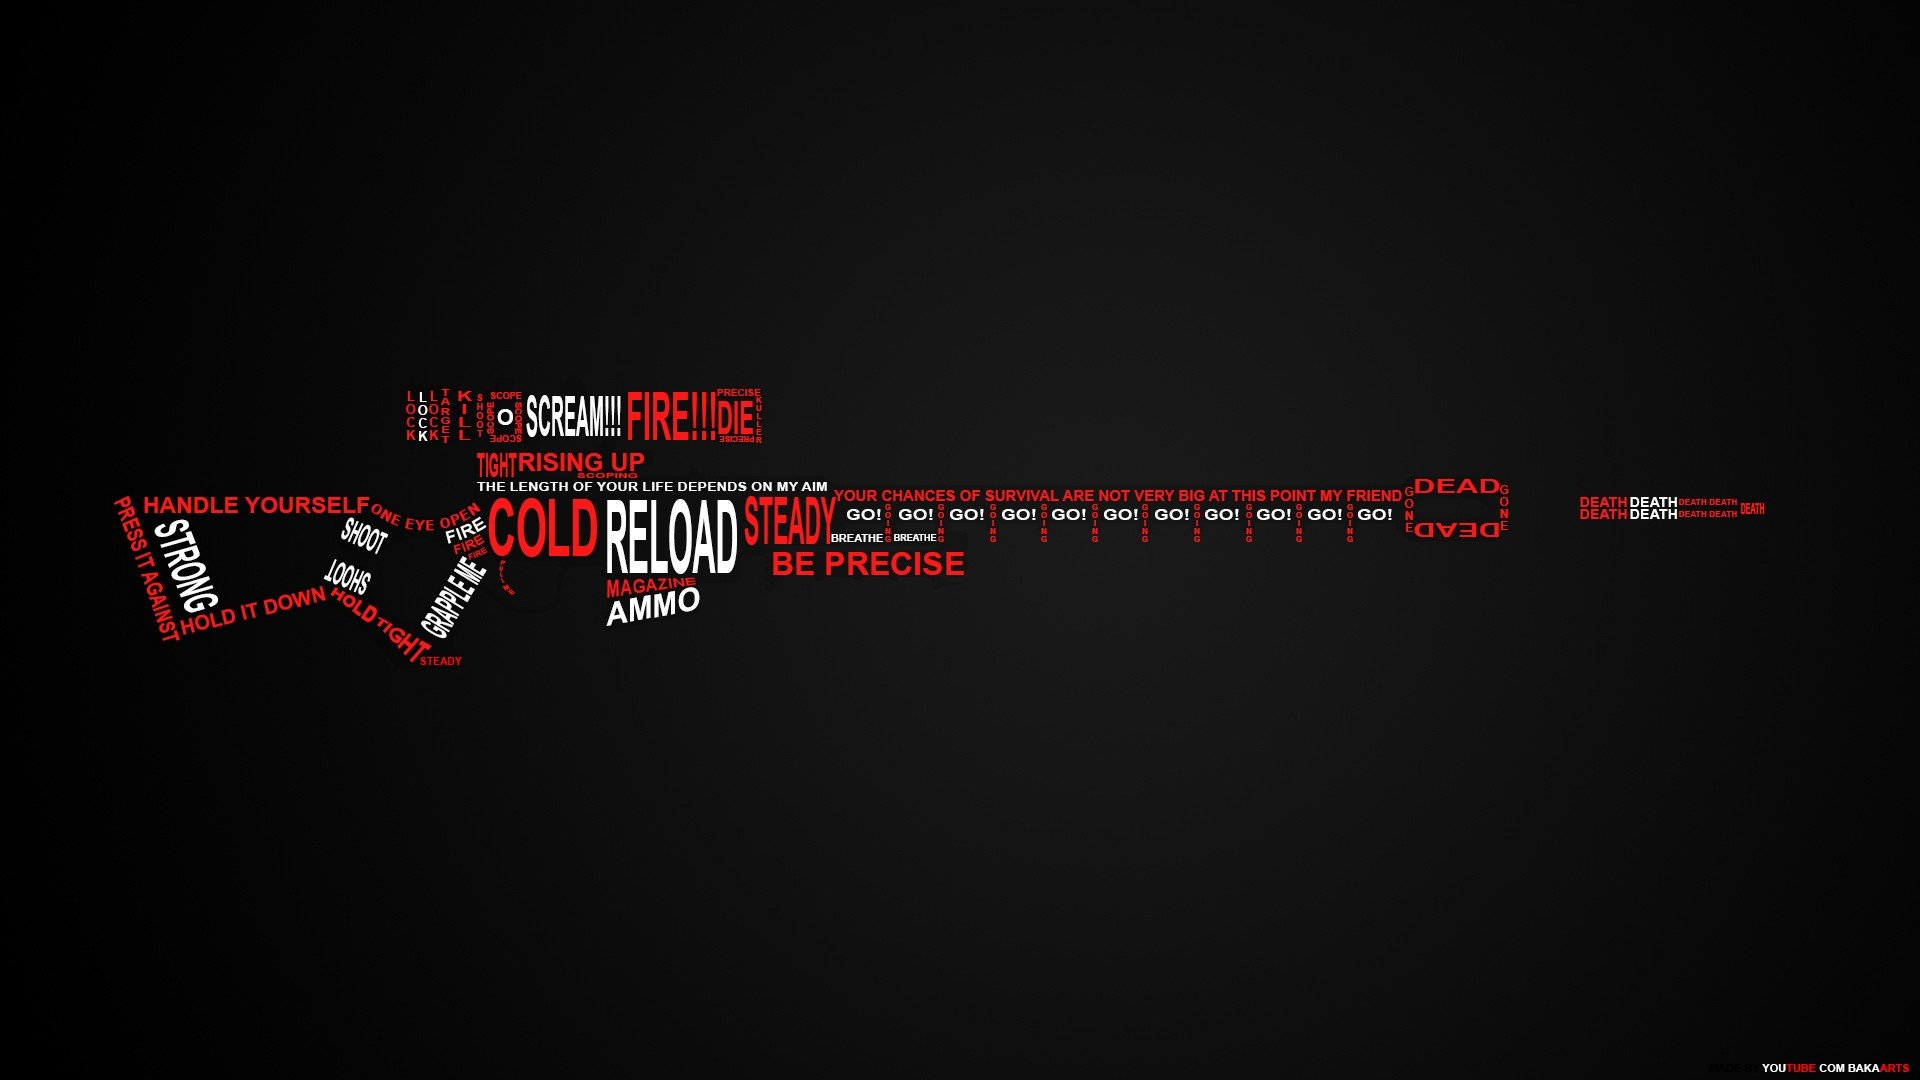 Rifle Sniper Rifle Typography text military weapons guns 1920x1080